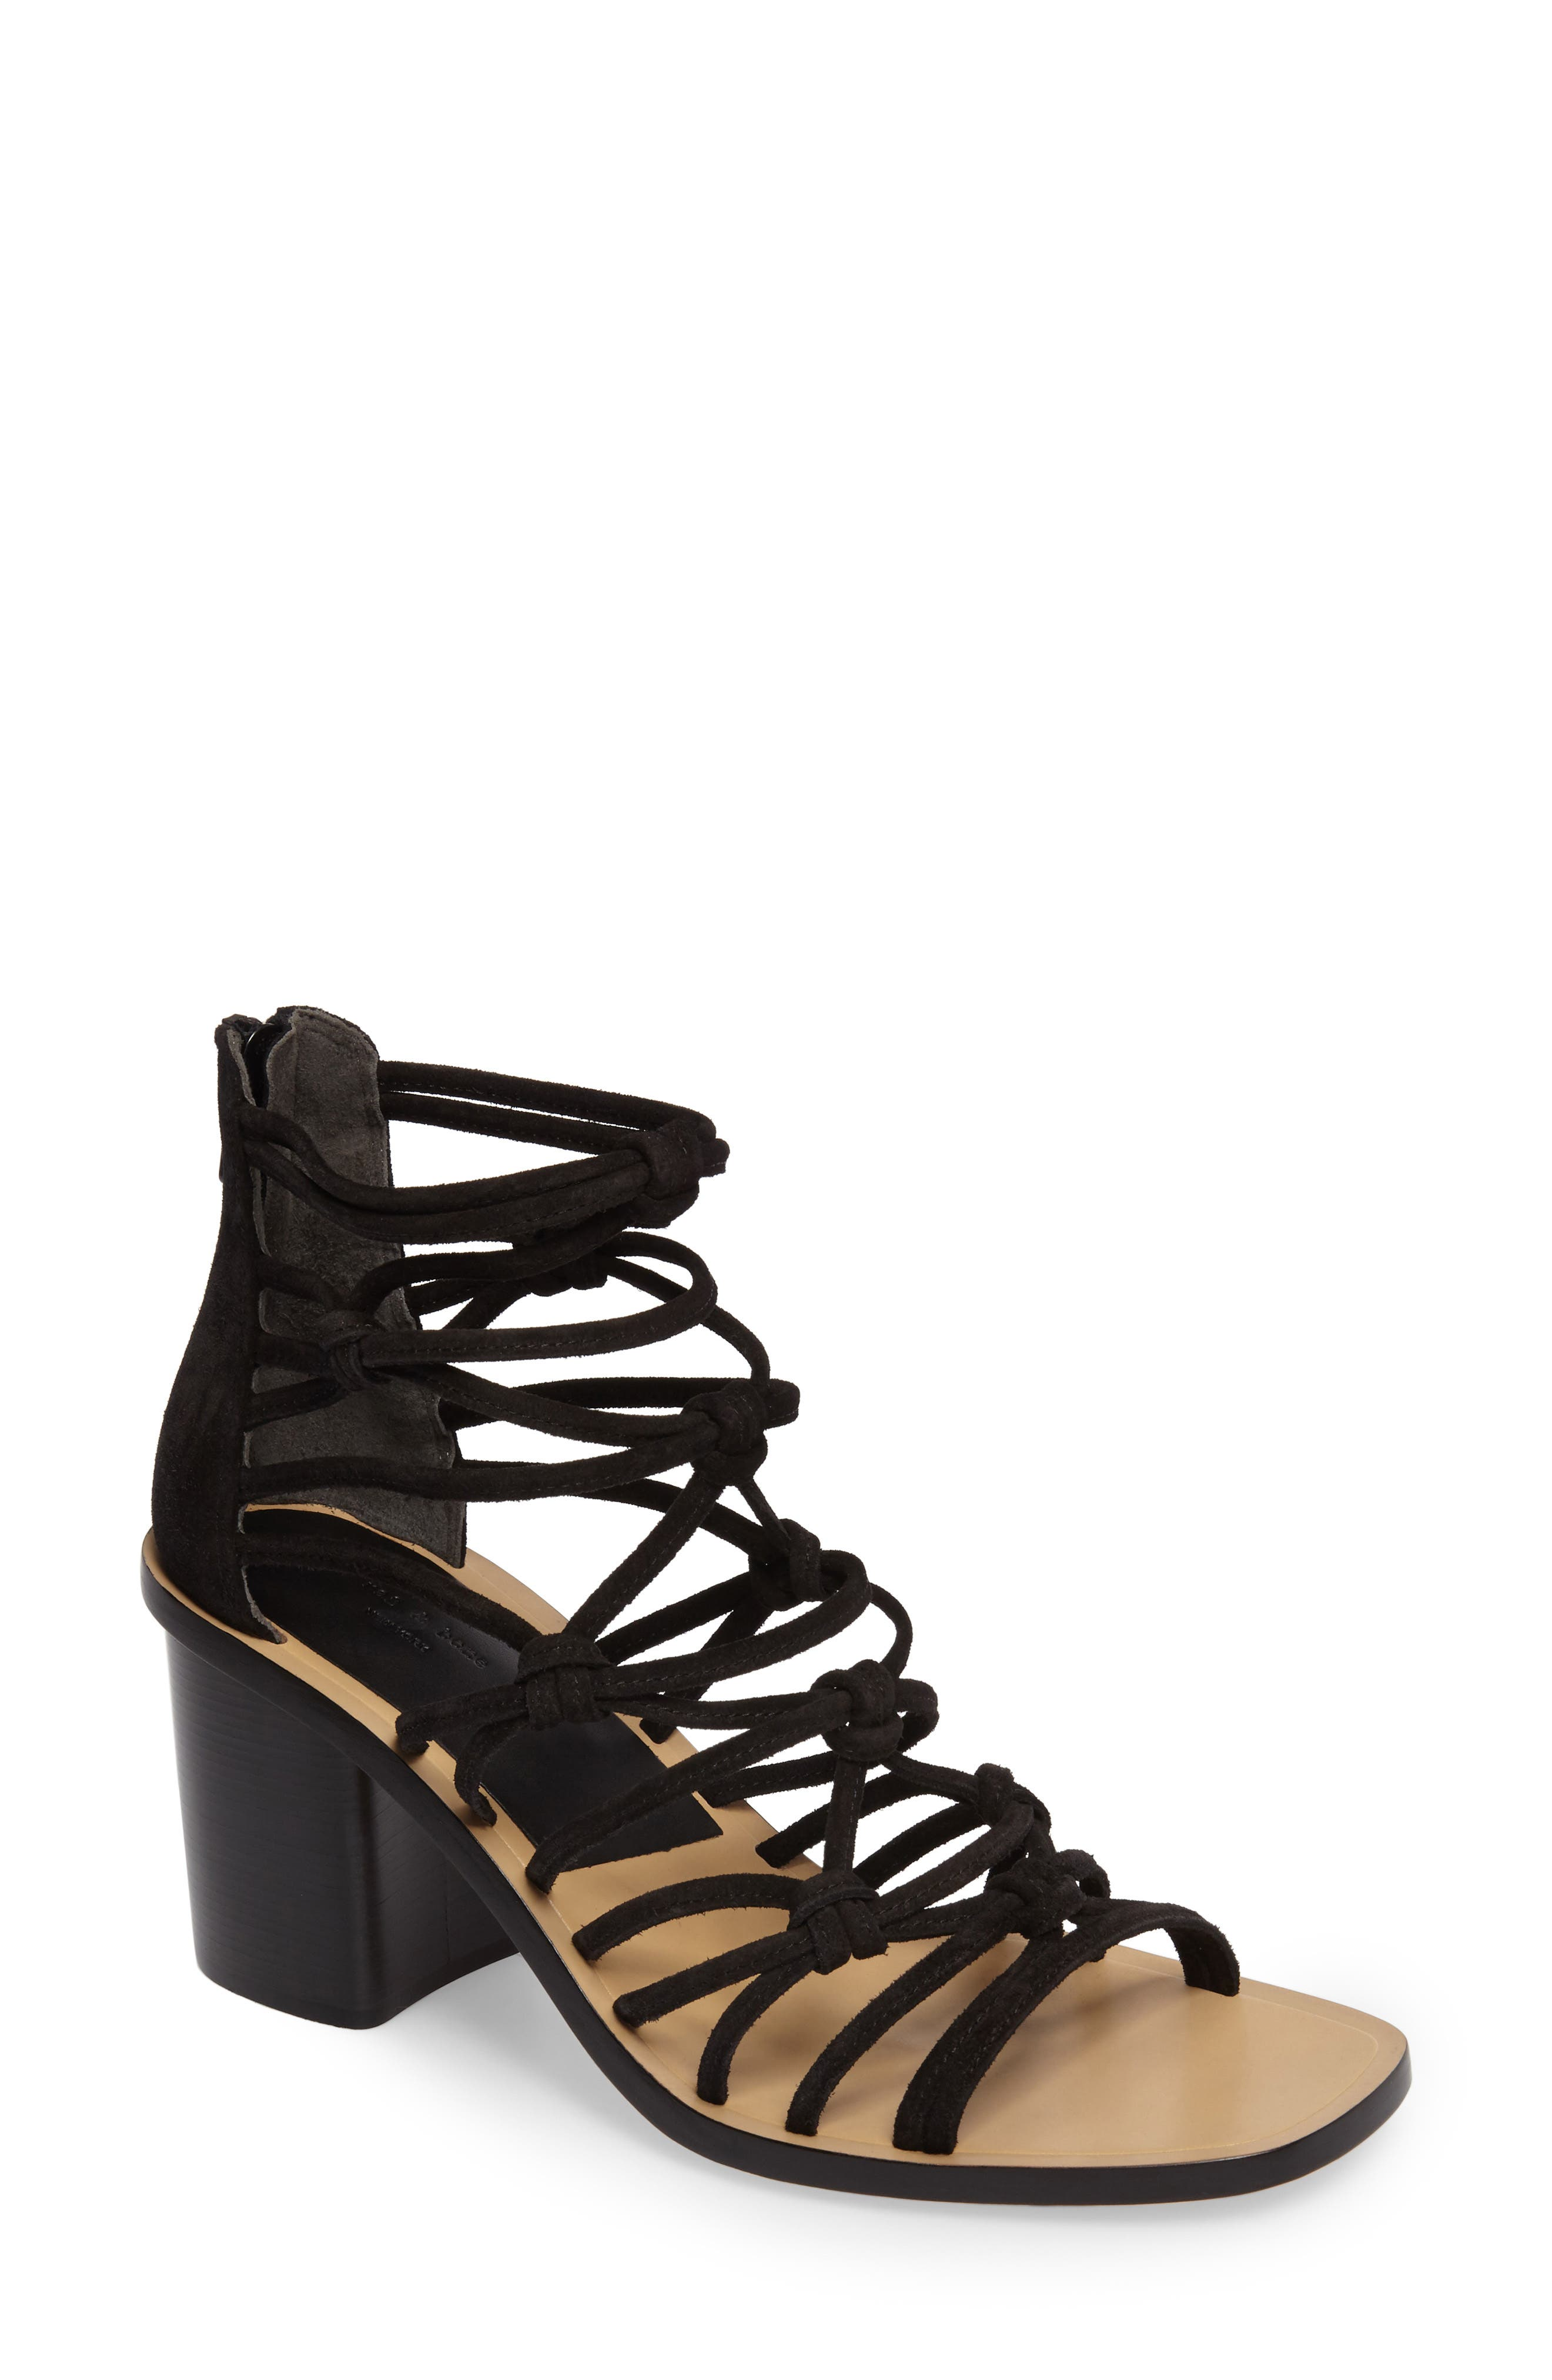 Main Image - rag & bone Camille Knotted Strappy Sandal (Women)